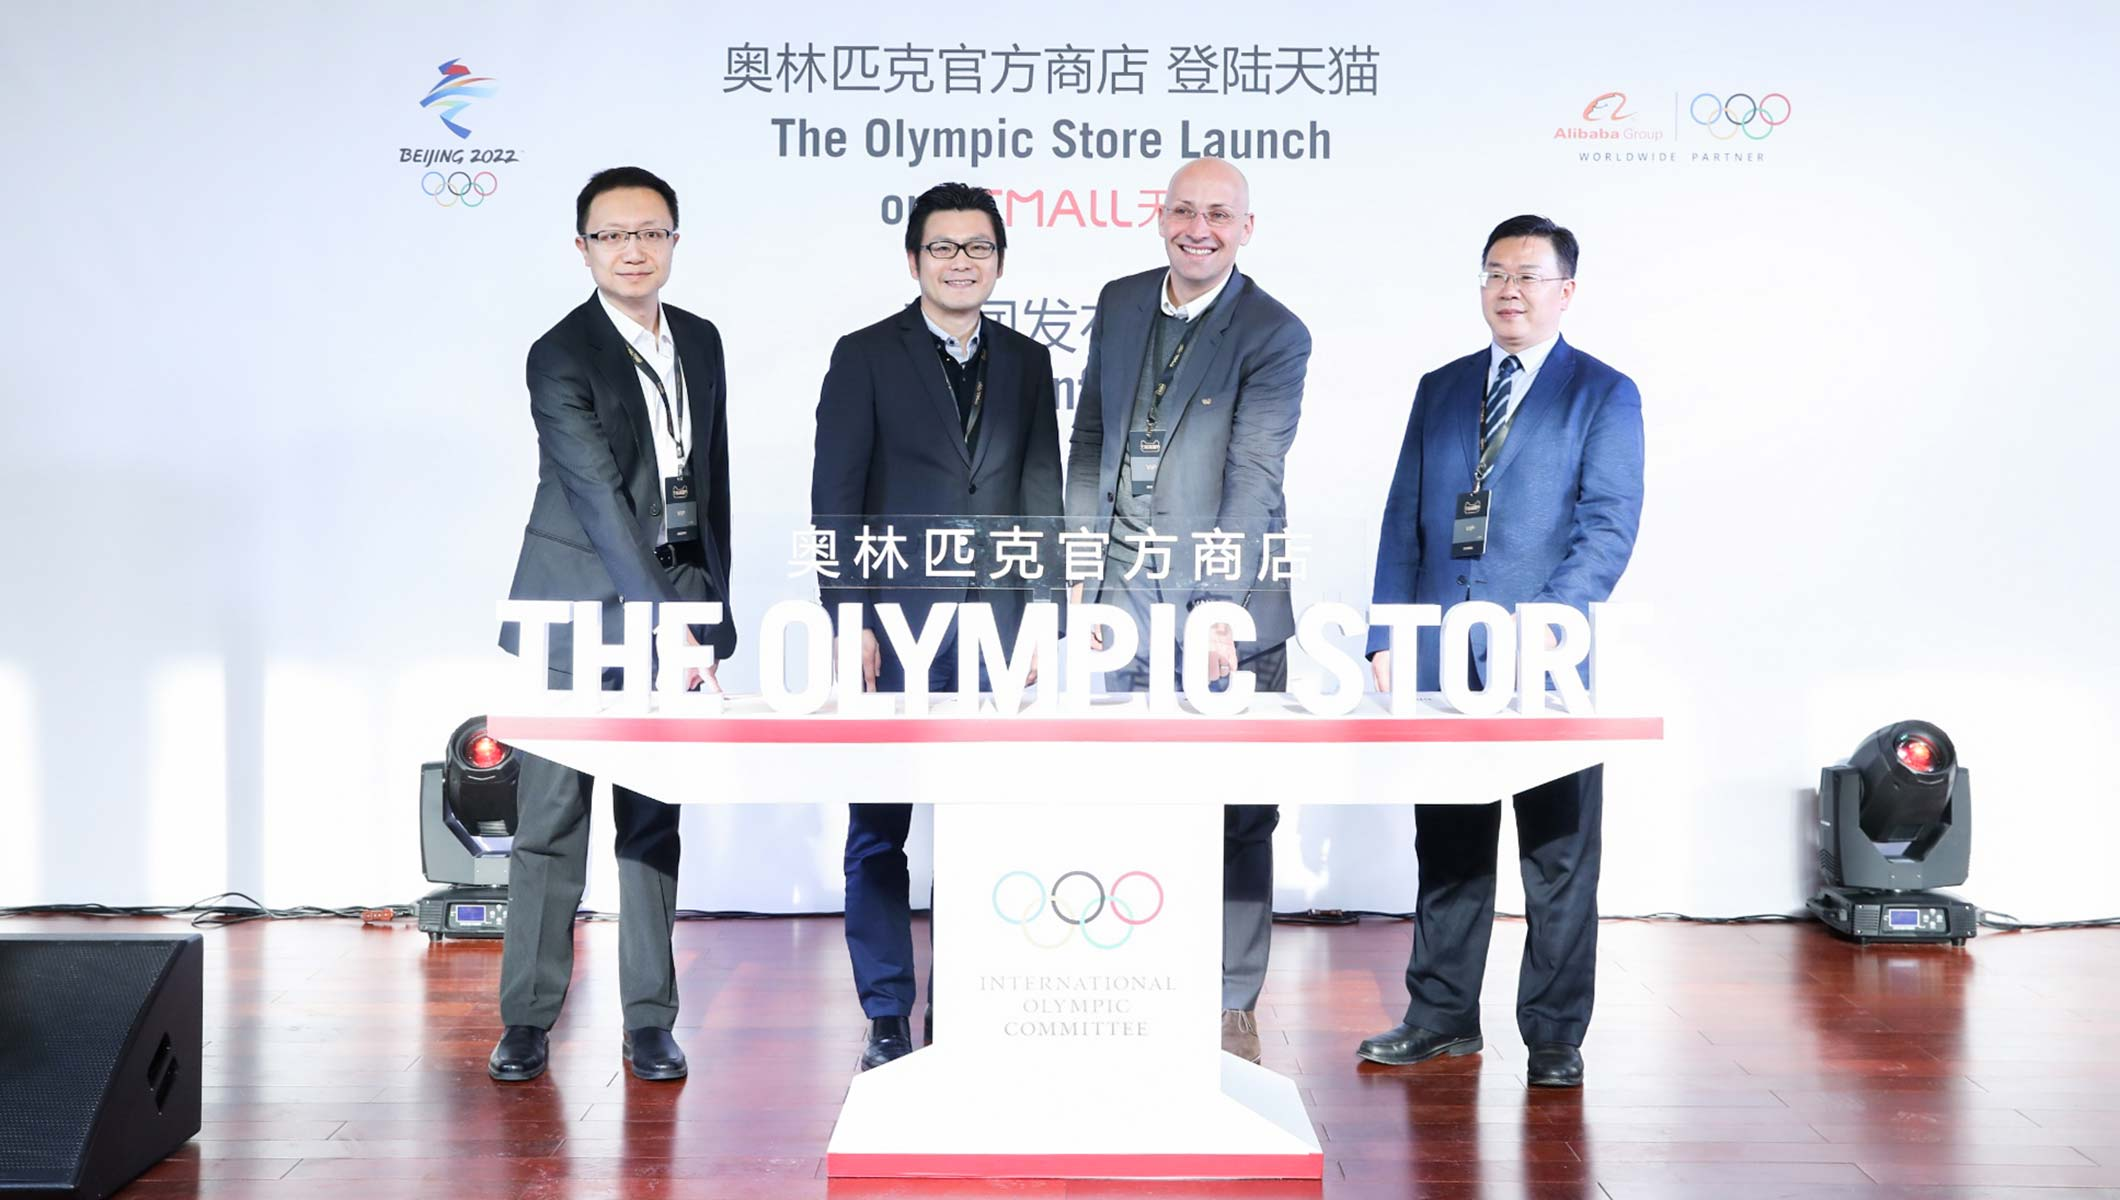 International Olympic Committee Launches the First Olympic Store for Chinese Fans with Alibaba Group